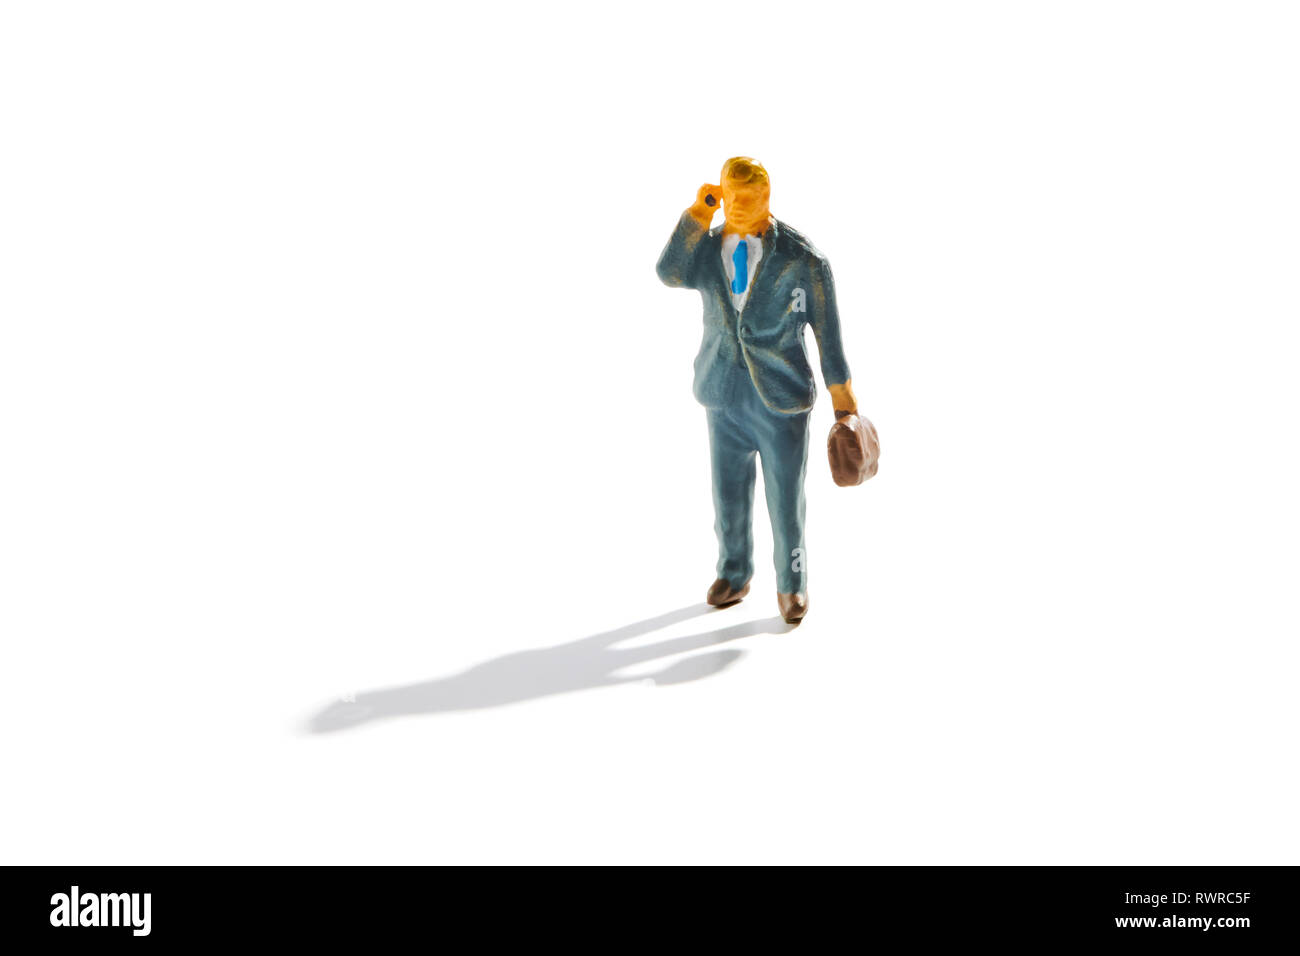 Miniature businessman with briefcase using a mobile phone having a conversation as he walks along with shadow on white - Stock Image